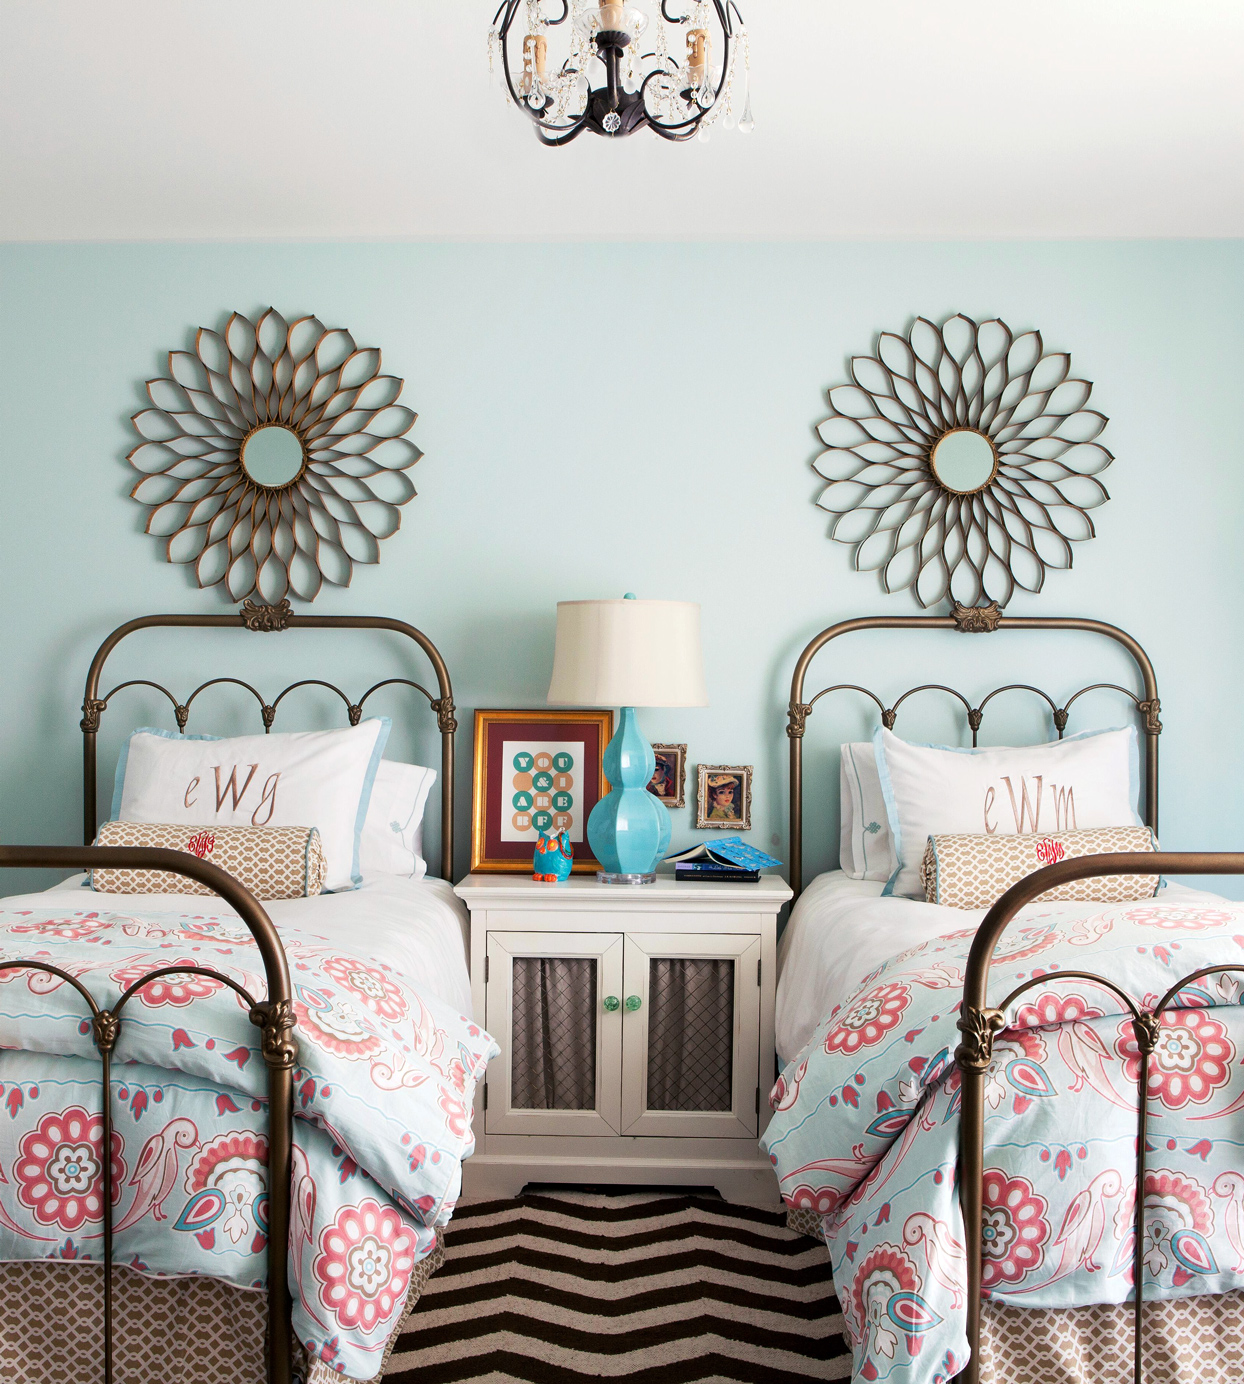 blue bedroom with 2 beds